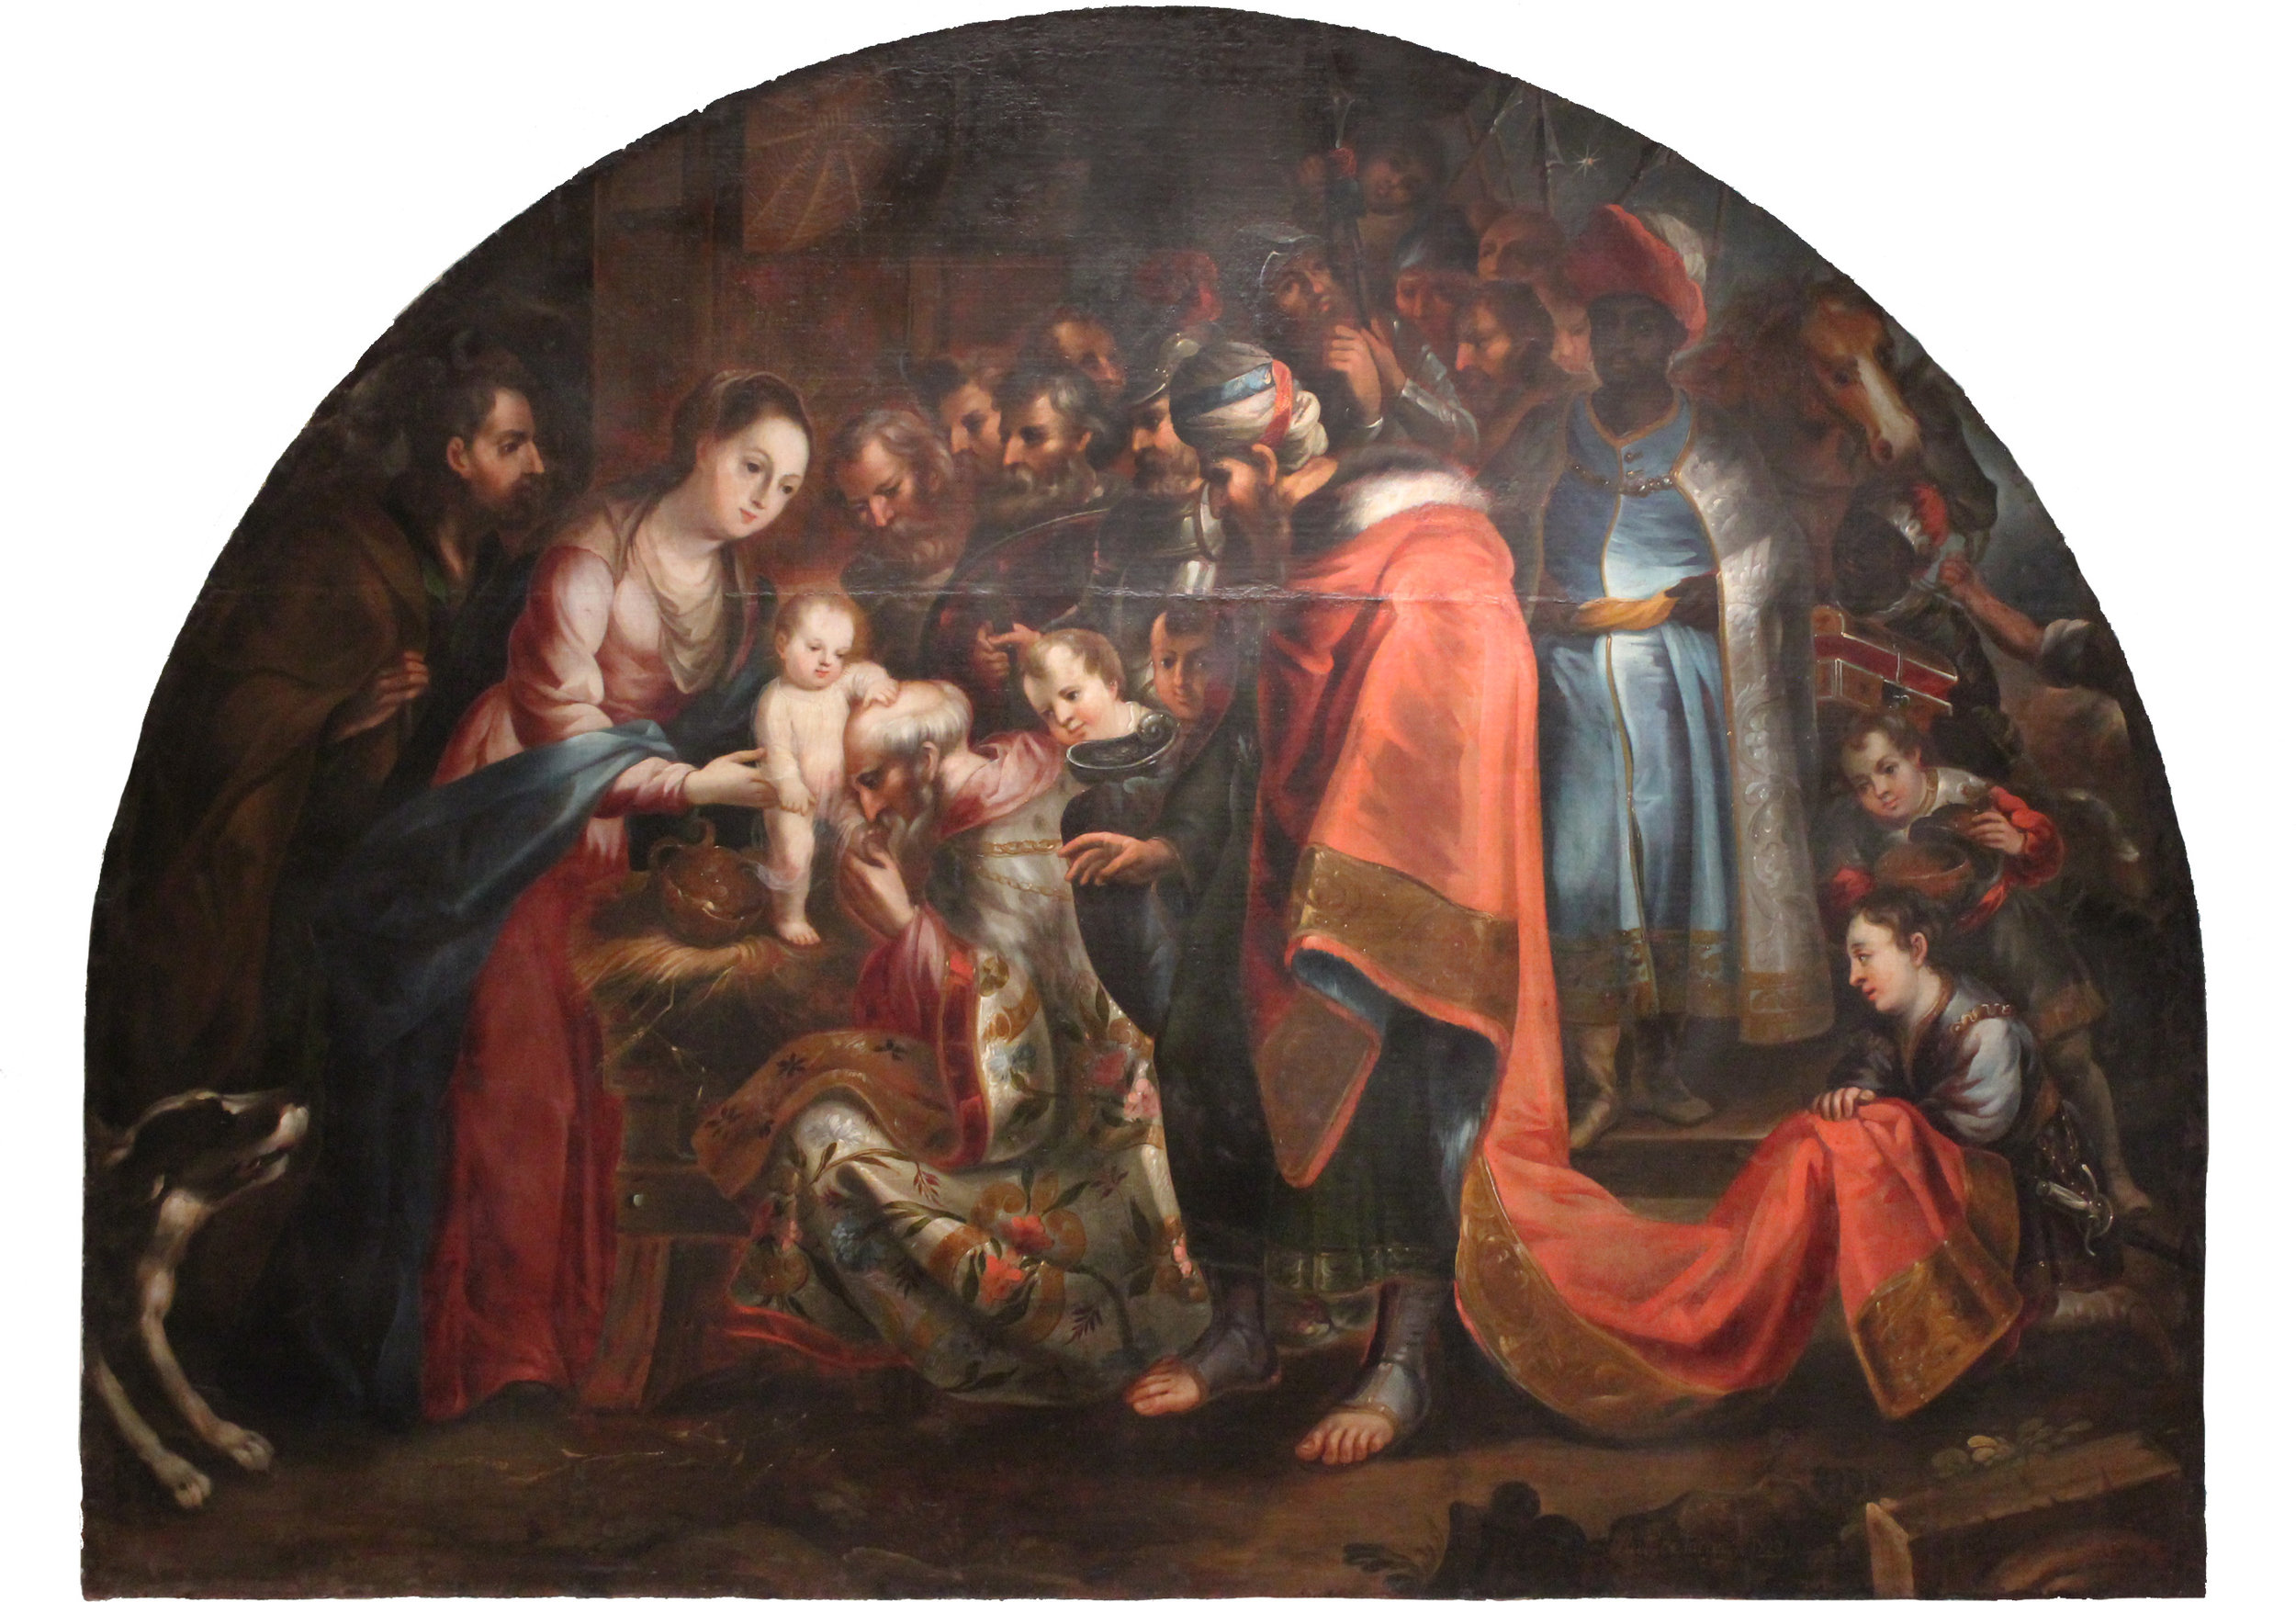 """Antonio de Torres, Adoration of the Magi, 1729, 68.5"""" x 91"""", Oil on canvas. San Angelo Museum of Fine Arts, Museum purchase with funds from the Art and Eva Camuñez Tucker Foundation"""